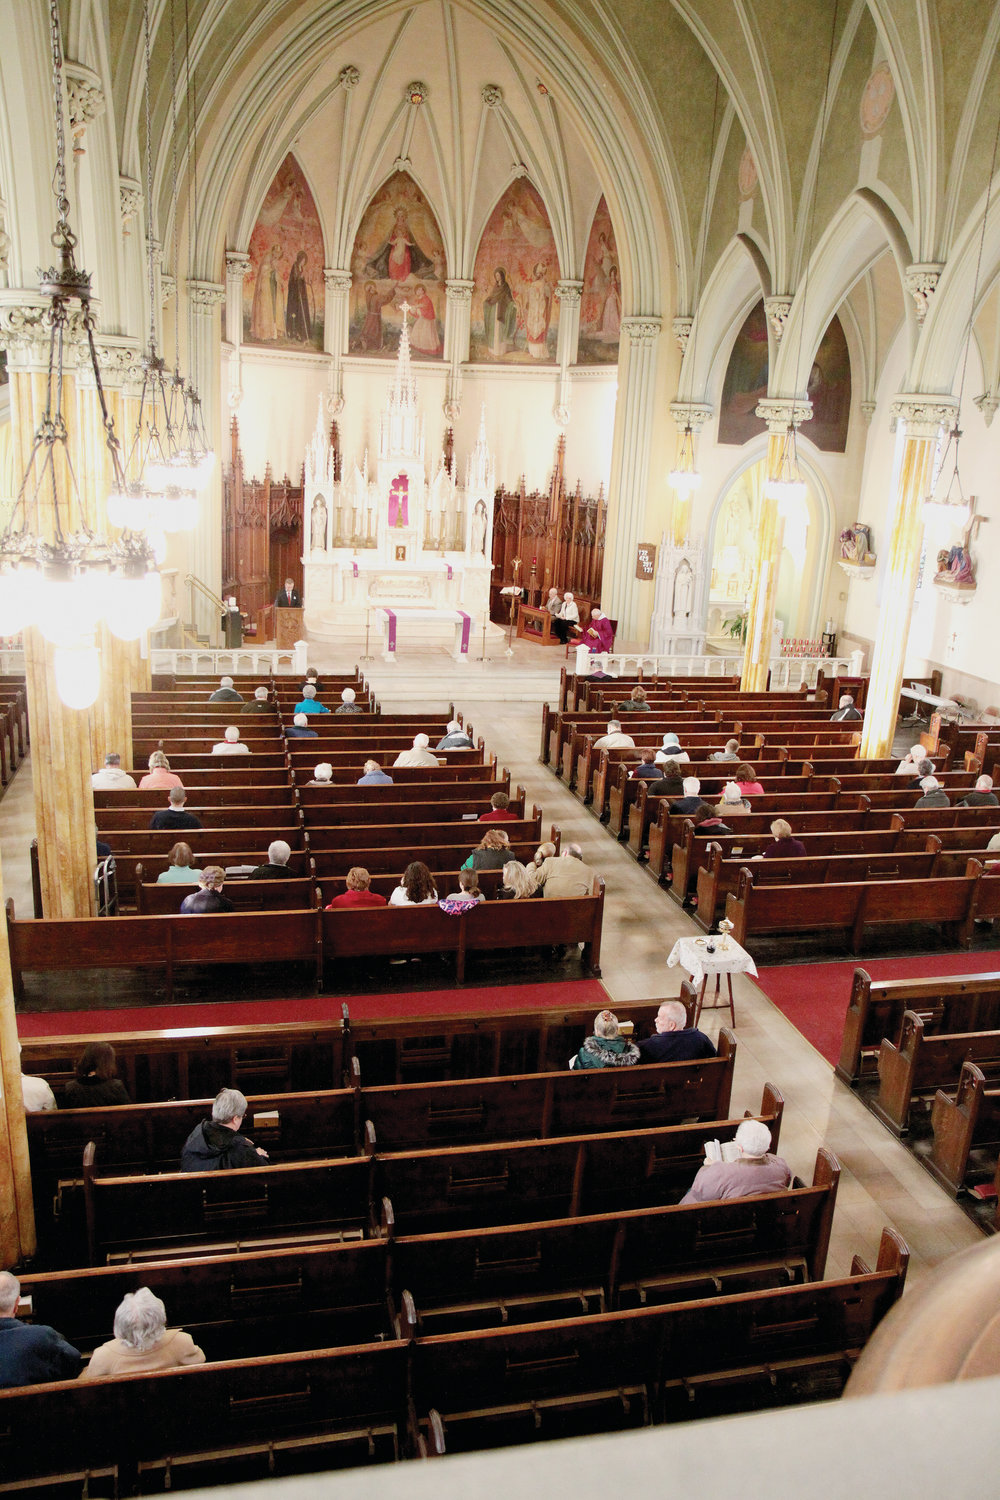 The interior of St. Charles is on display during a 2014 Mass. A special task force will recommend to Bishop Tobin a suitable future use of the building, which closed indefinitely on Jan. 13.